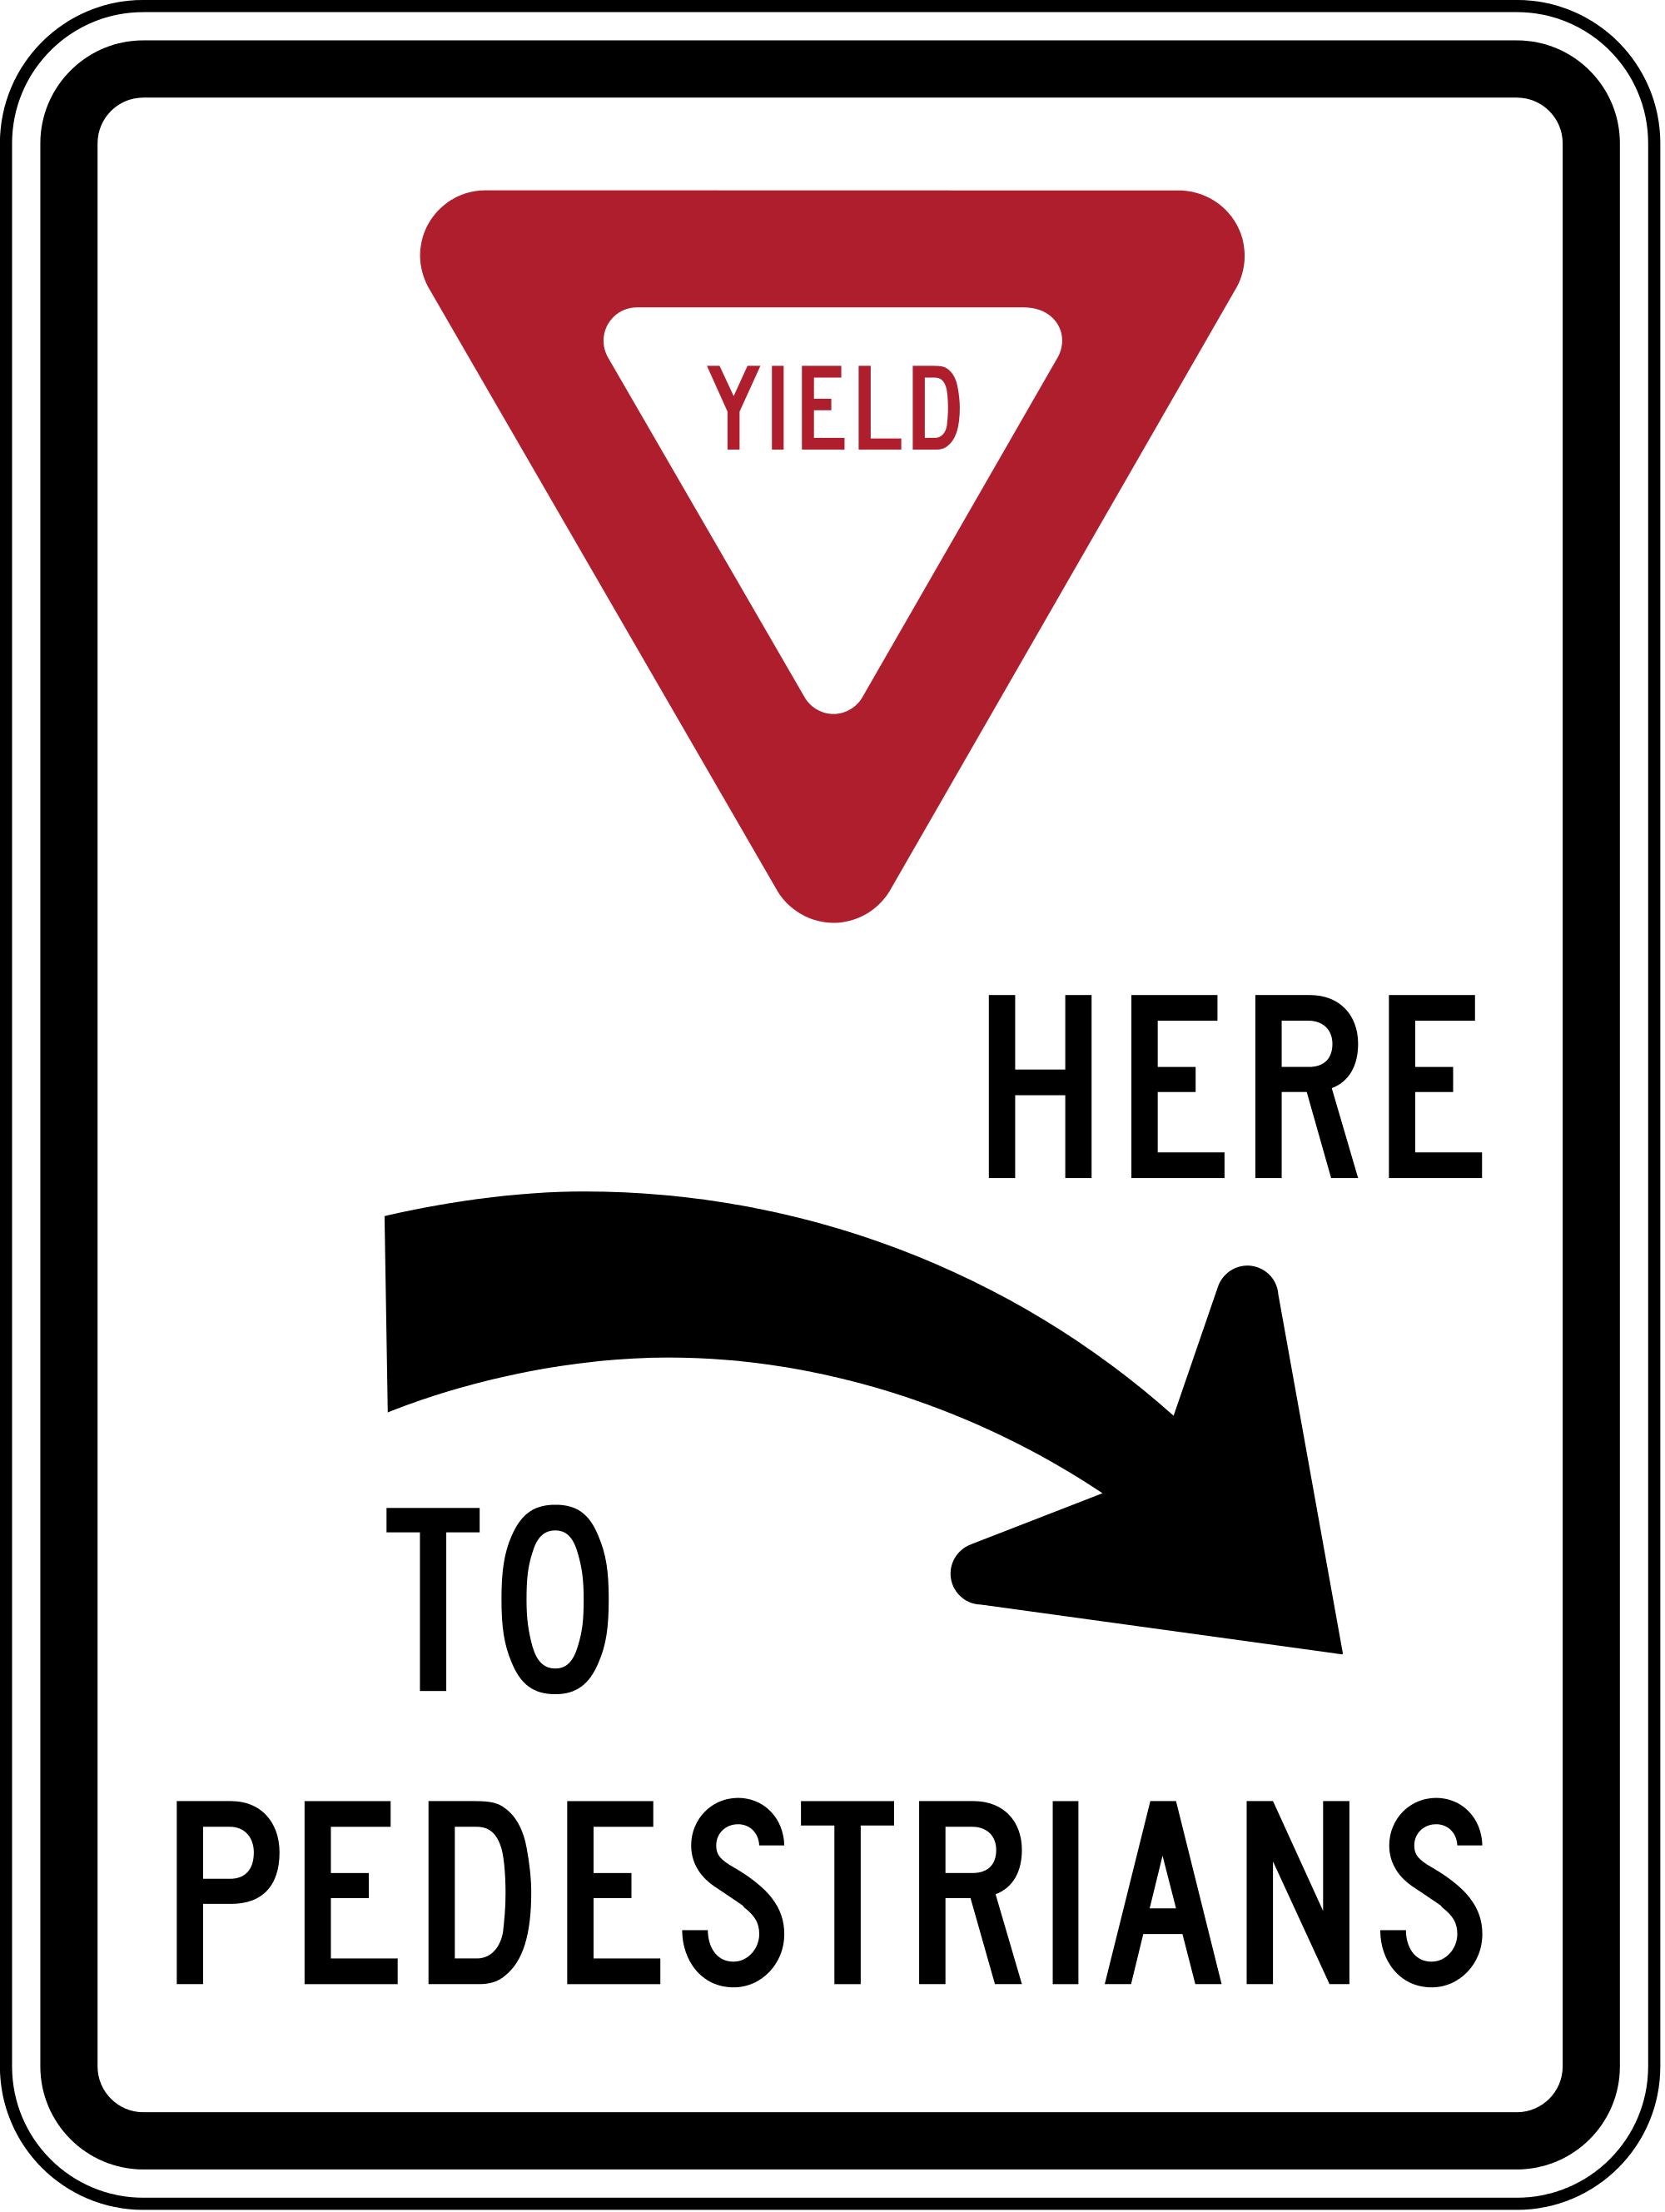 R1-5aR Yield Here To Pedestrians Regulatory Sign